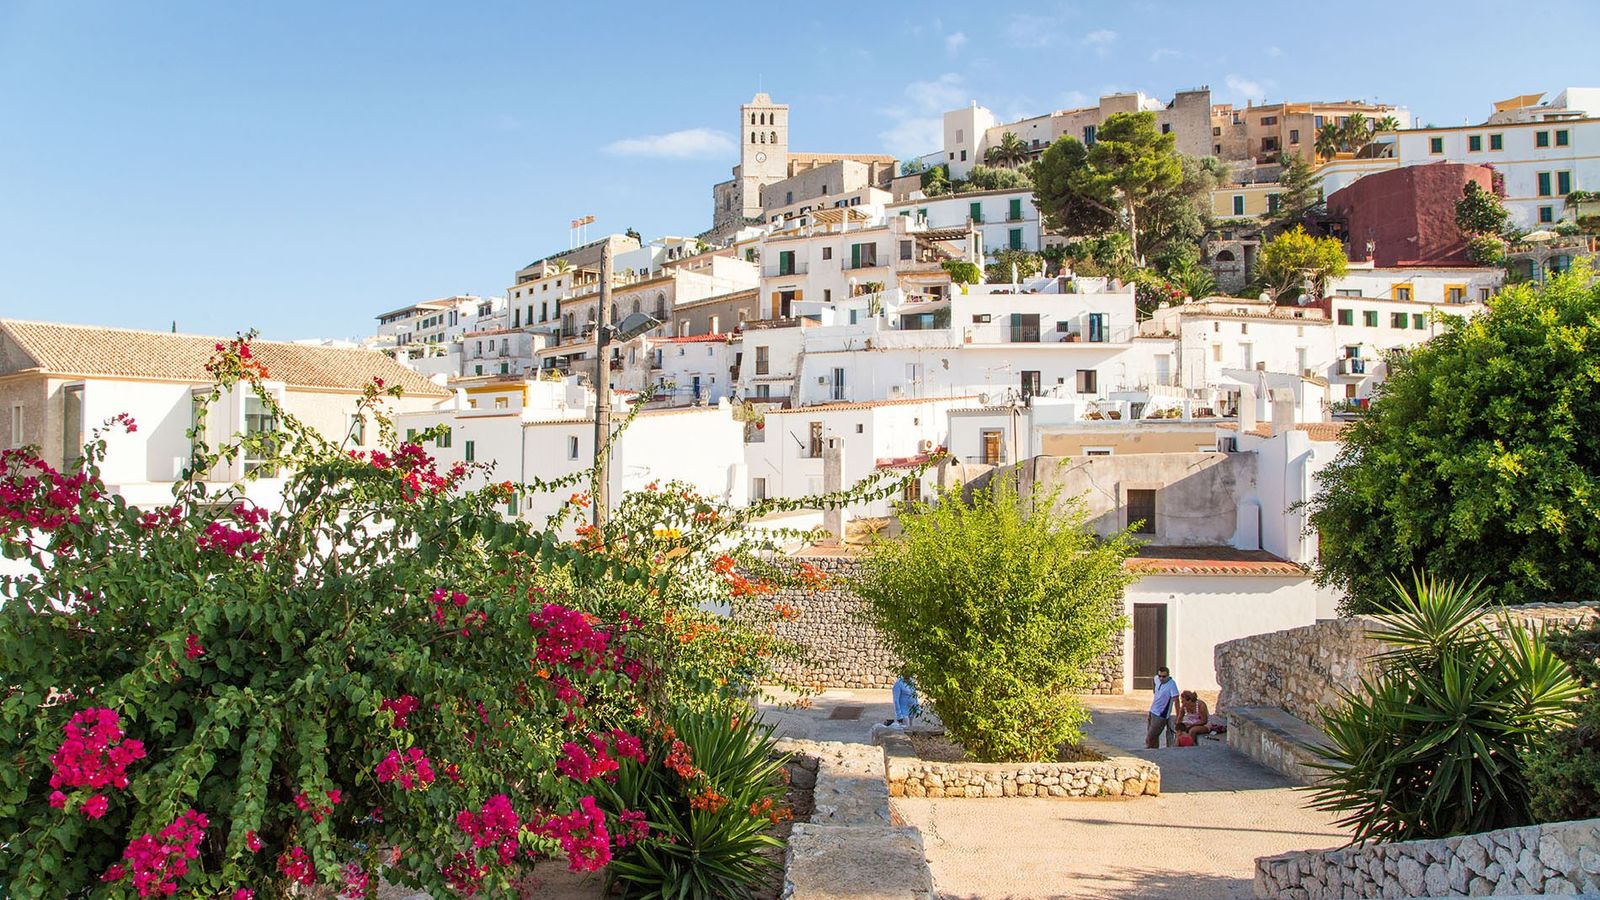 Ibiza's old town, known as Dalt Vila, is a maze of white-painted houses flushed pink with ...